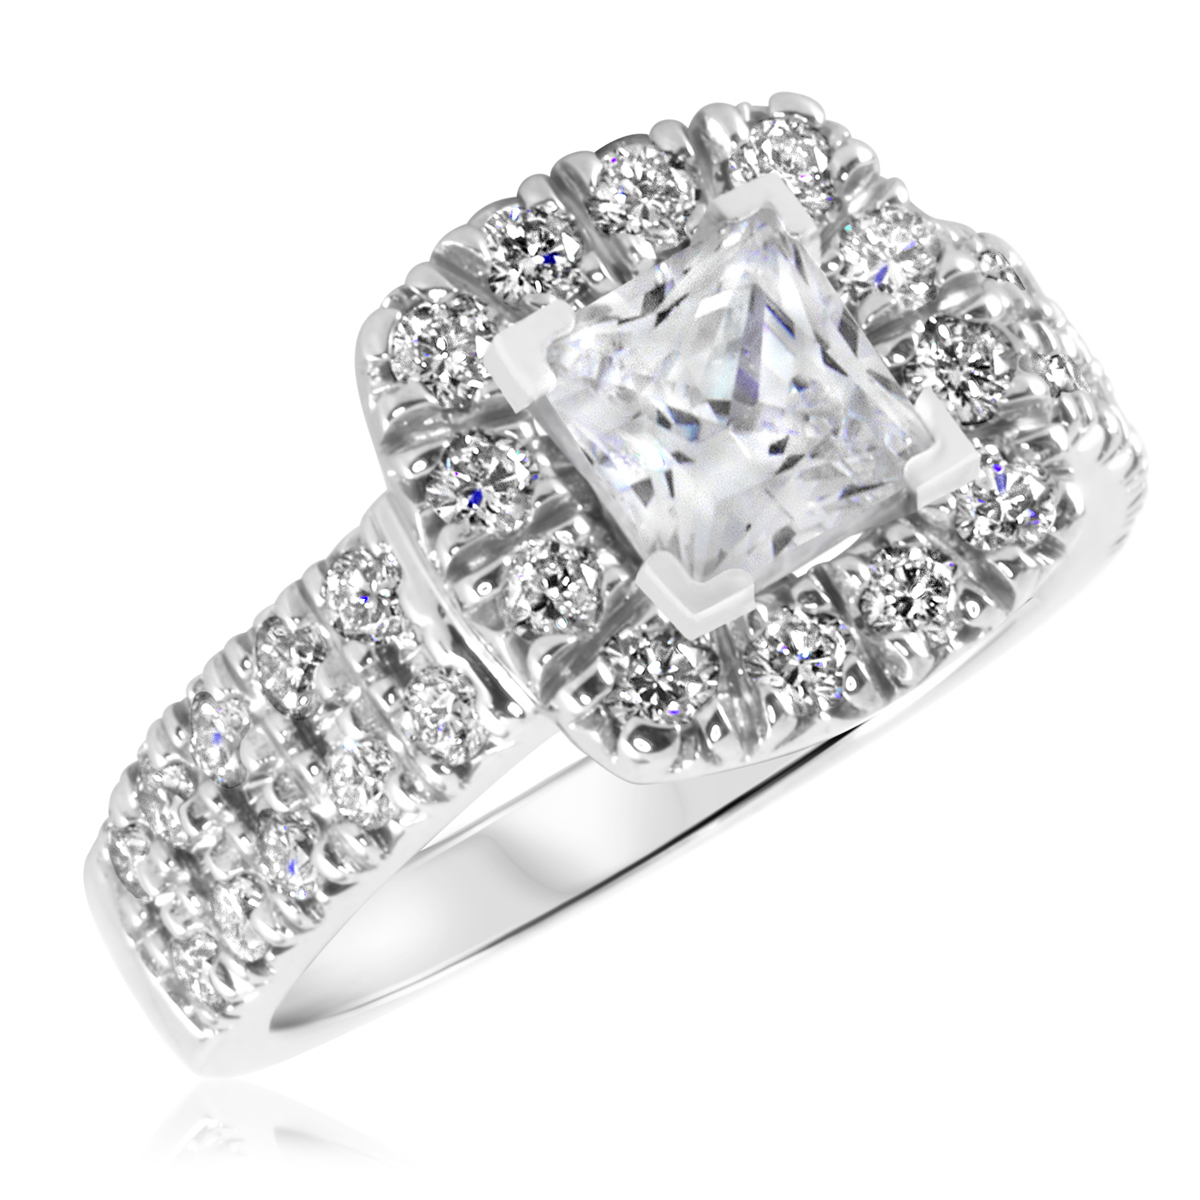 2 1/10 CT. T.W. Diamond Ladies Engagement Ring 10K White Gold- Size 8